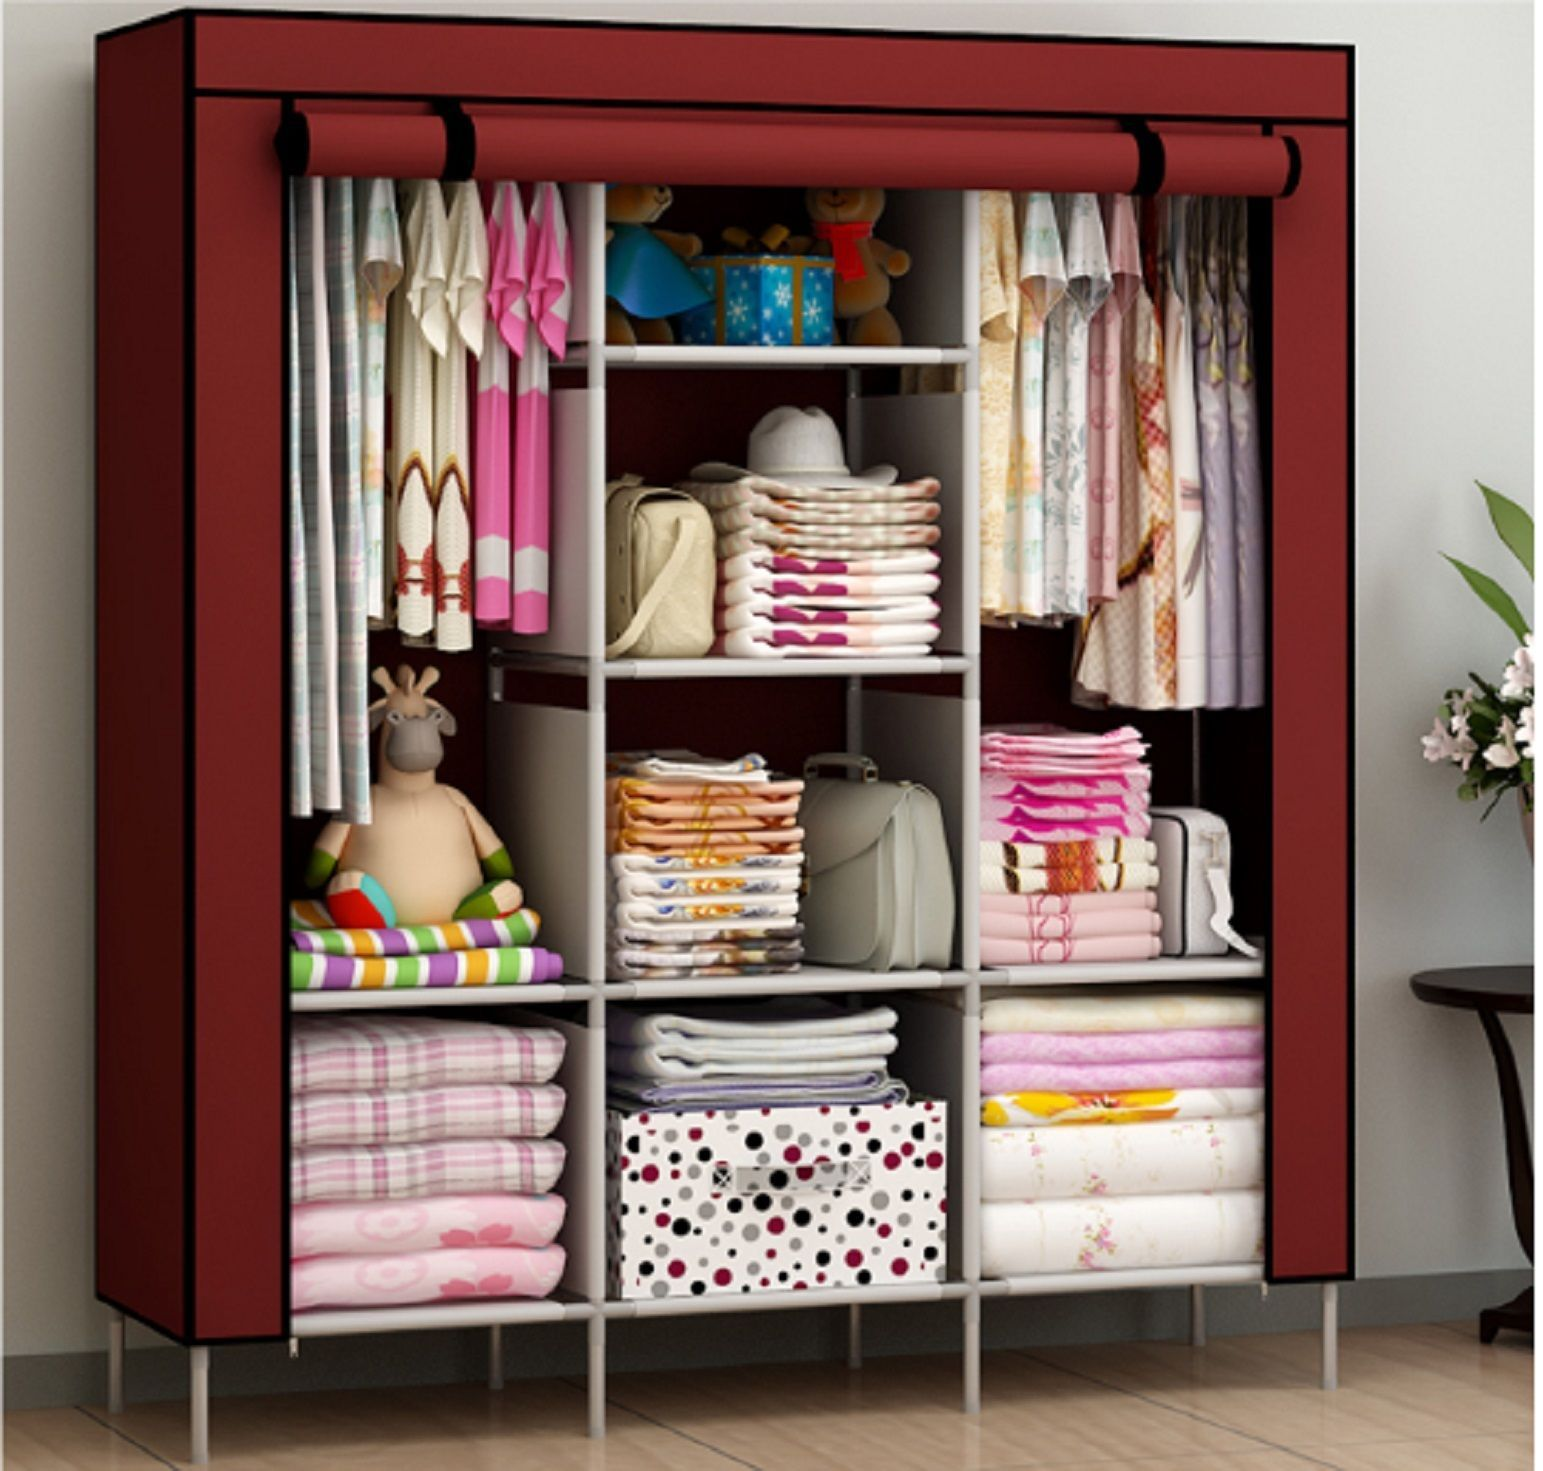 New Portable Bedroom Furniture Clothes Wardrobe Closet Storage ...